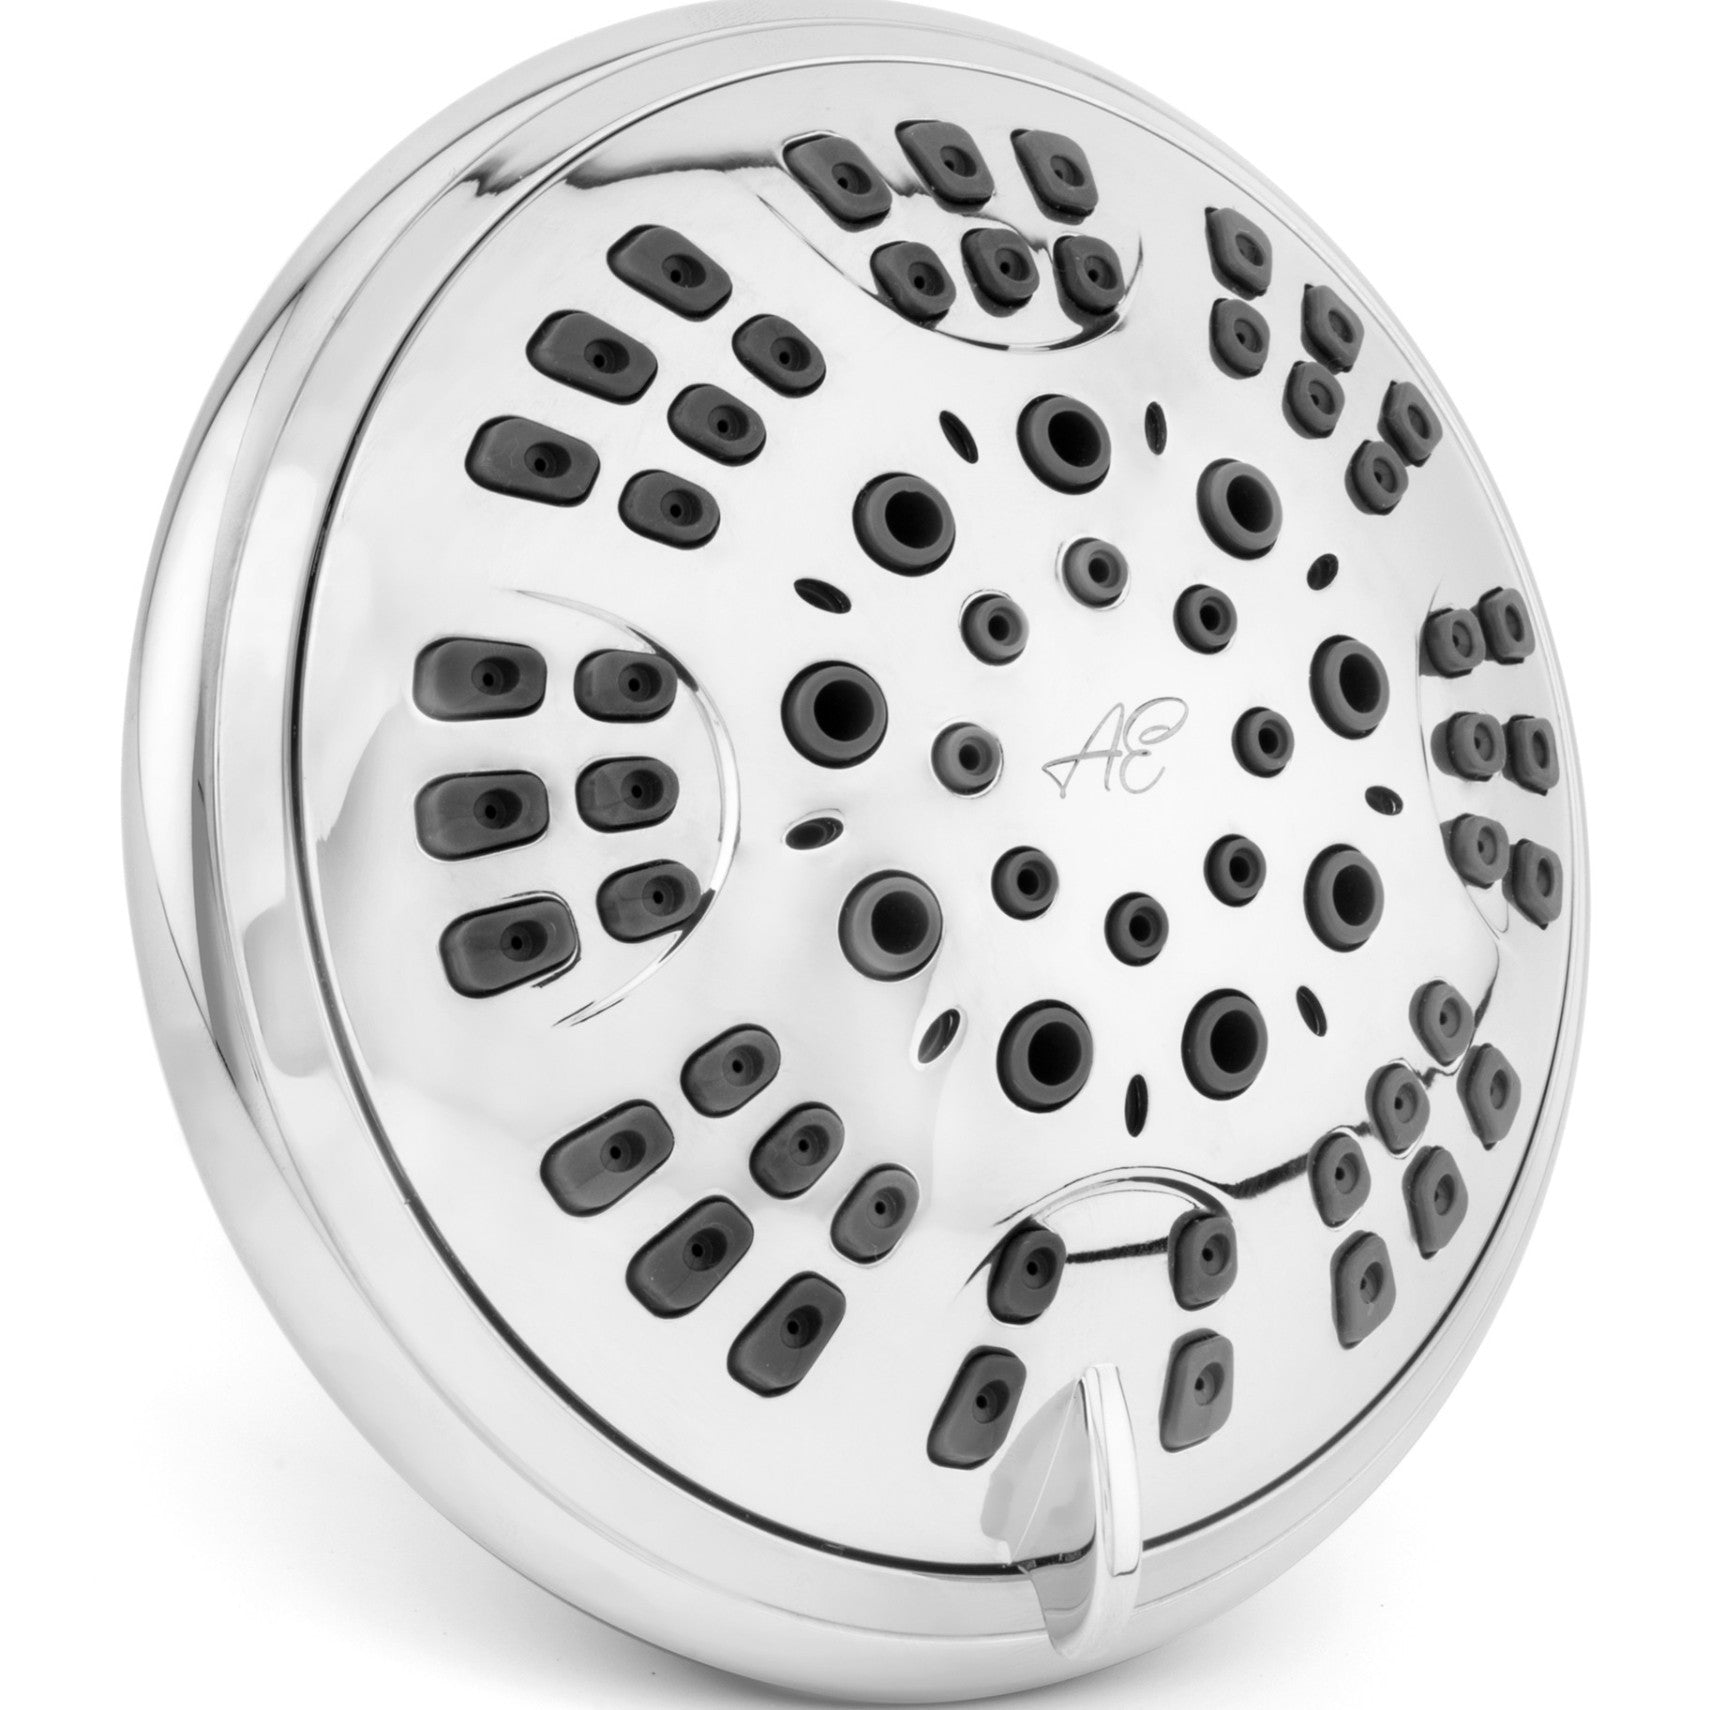 6 Function Luxury Shower Head – Aqua Elegante